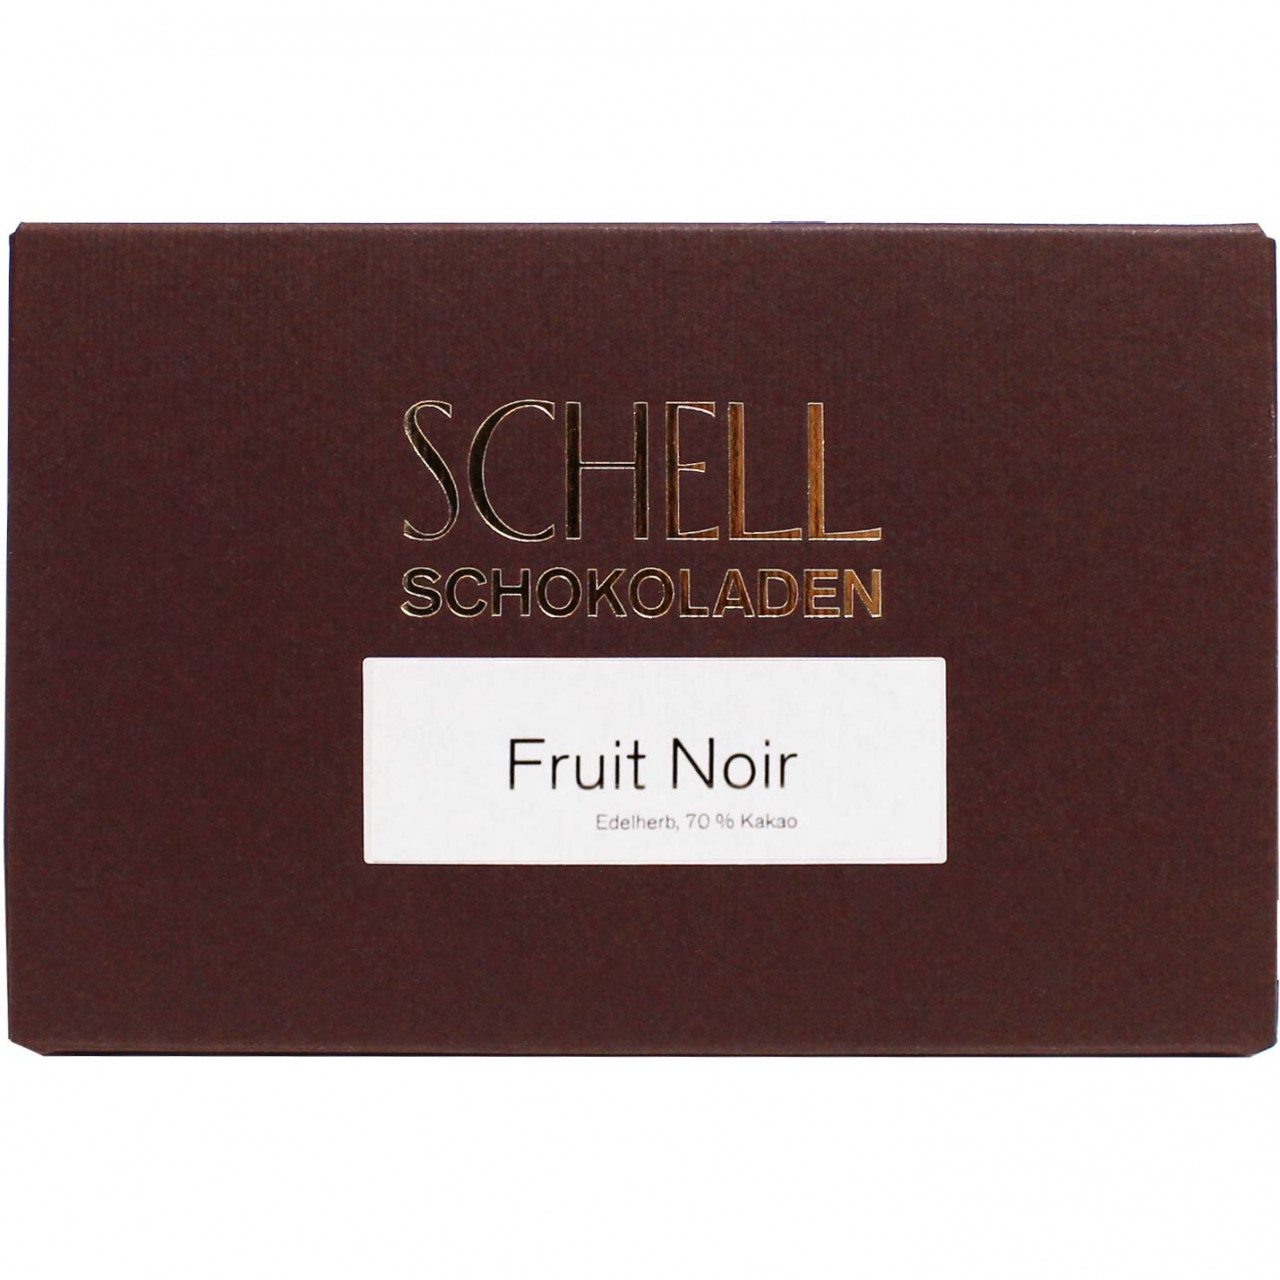 70% chocolate fruit noir - Bar of Chocolate, Germany, german chocolate, Chocolate with fruits - Chocolats-De-Luxe